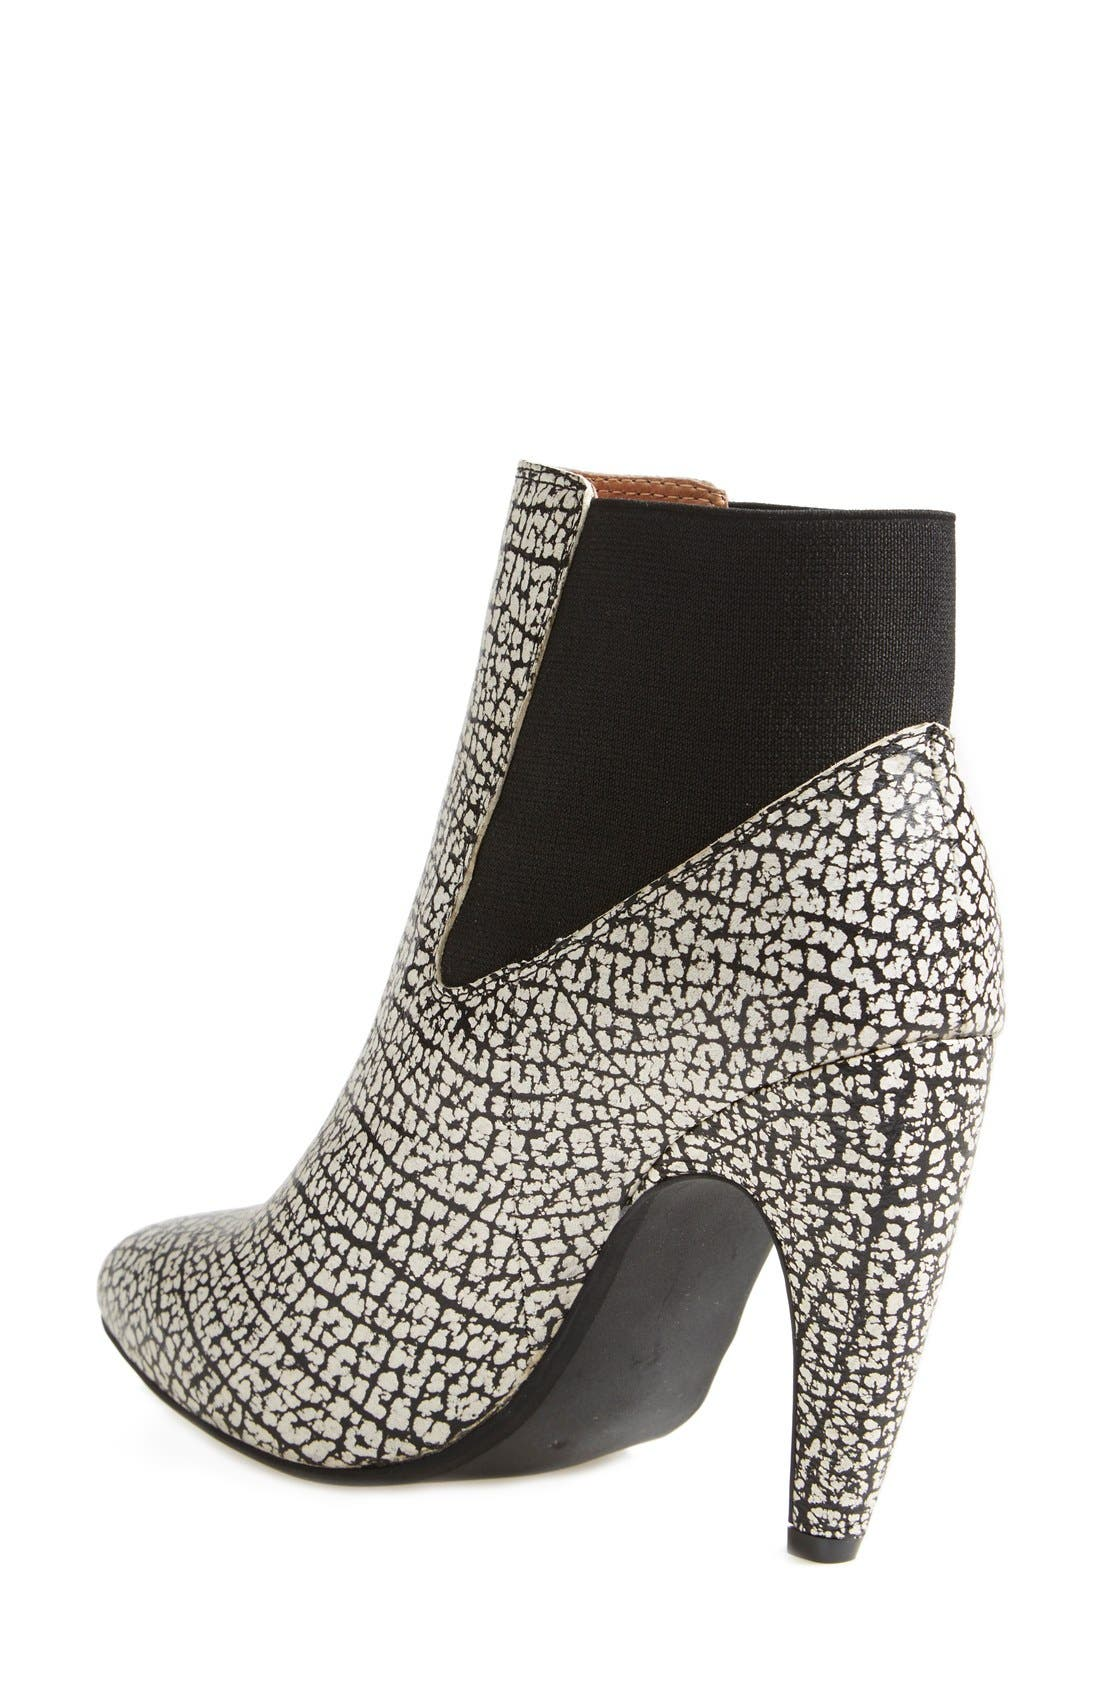 Alternate Image 2  - Jeffrey Campbell 'Calzino' Suede Bootie (Women)